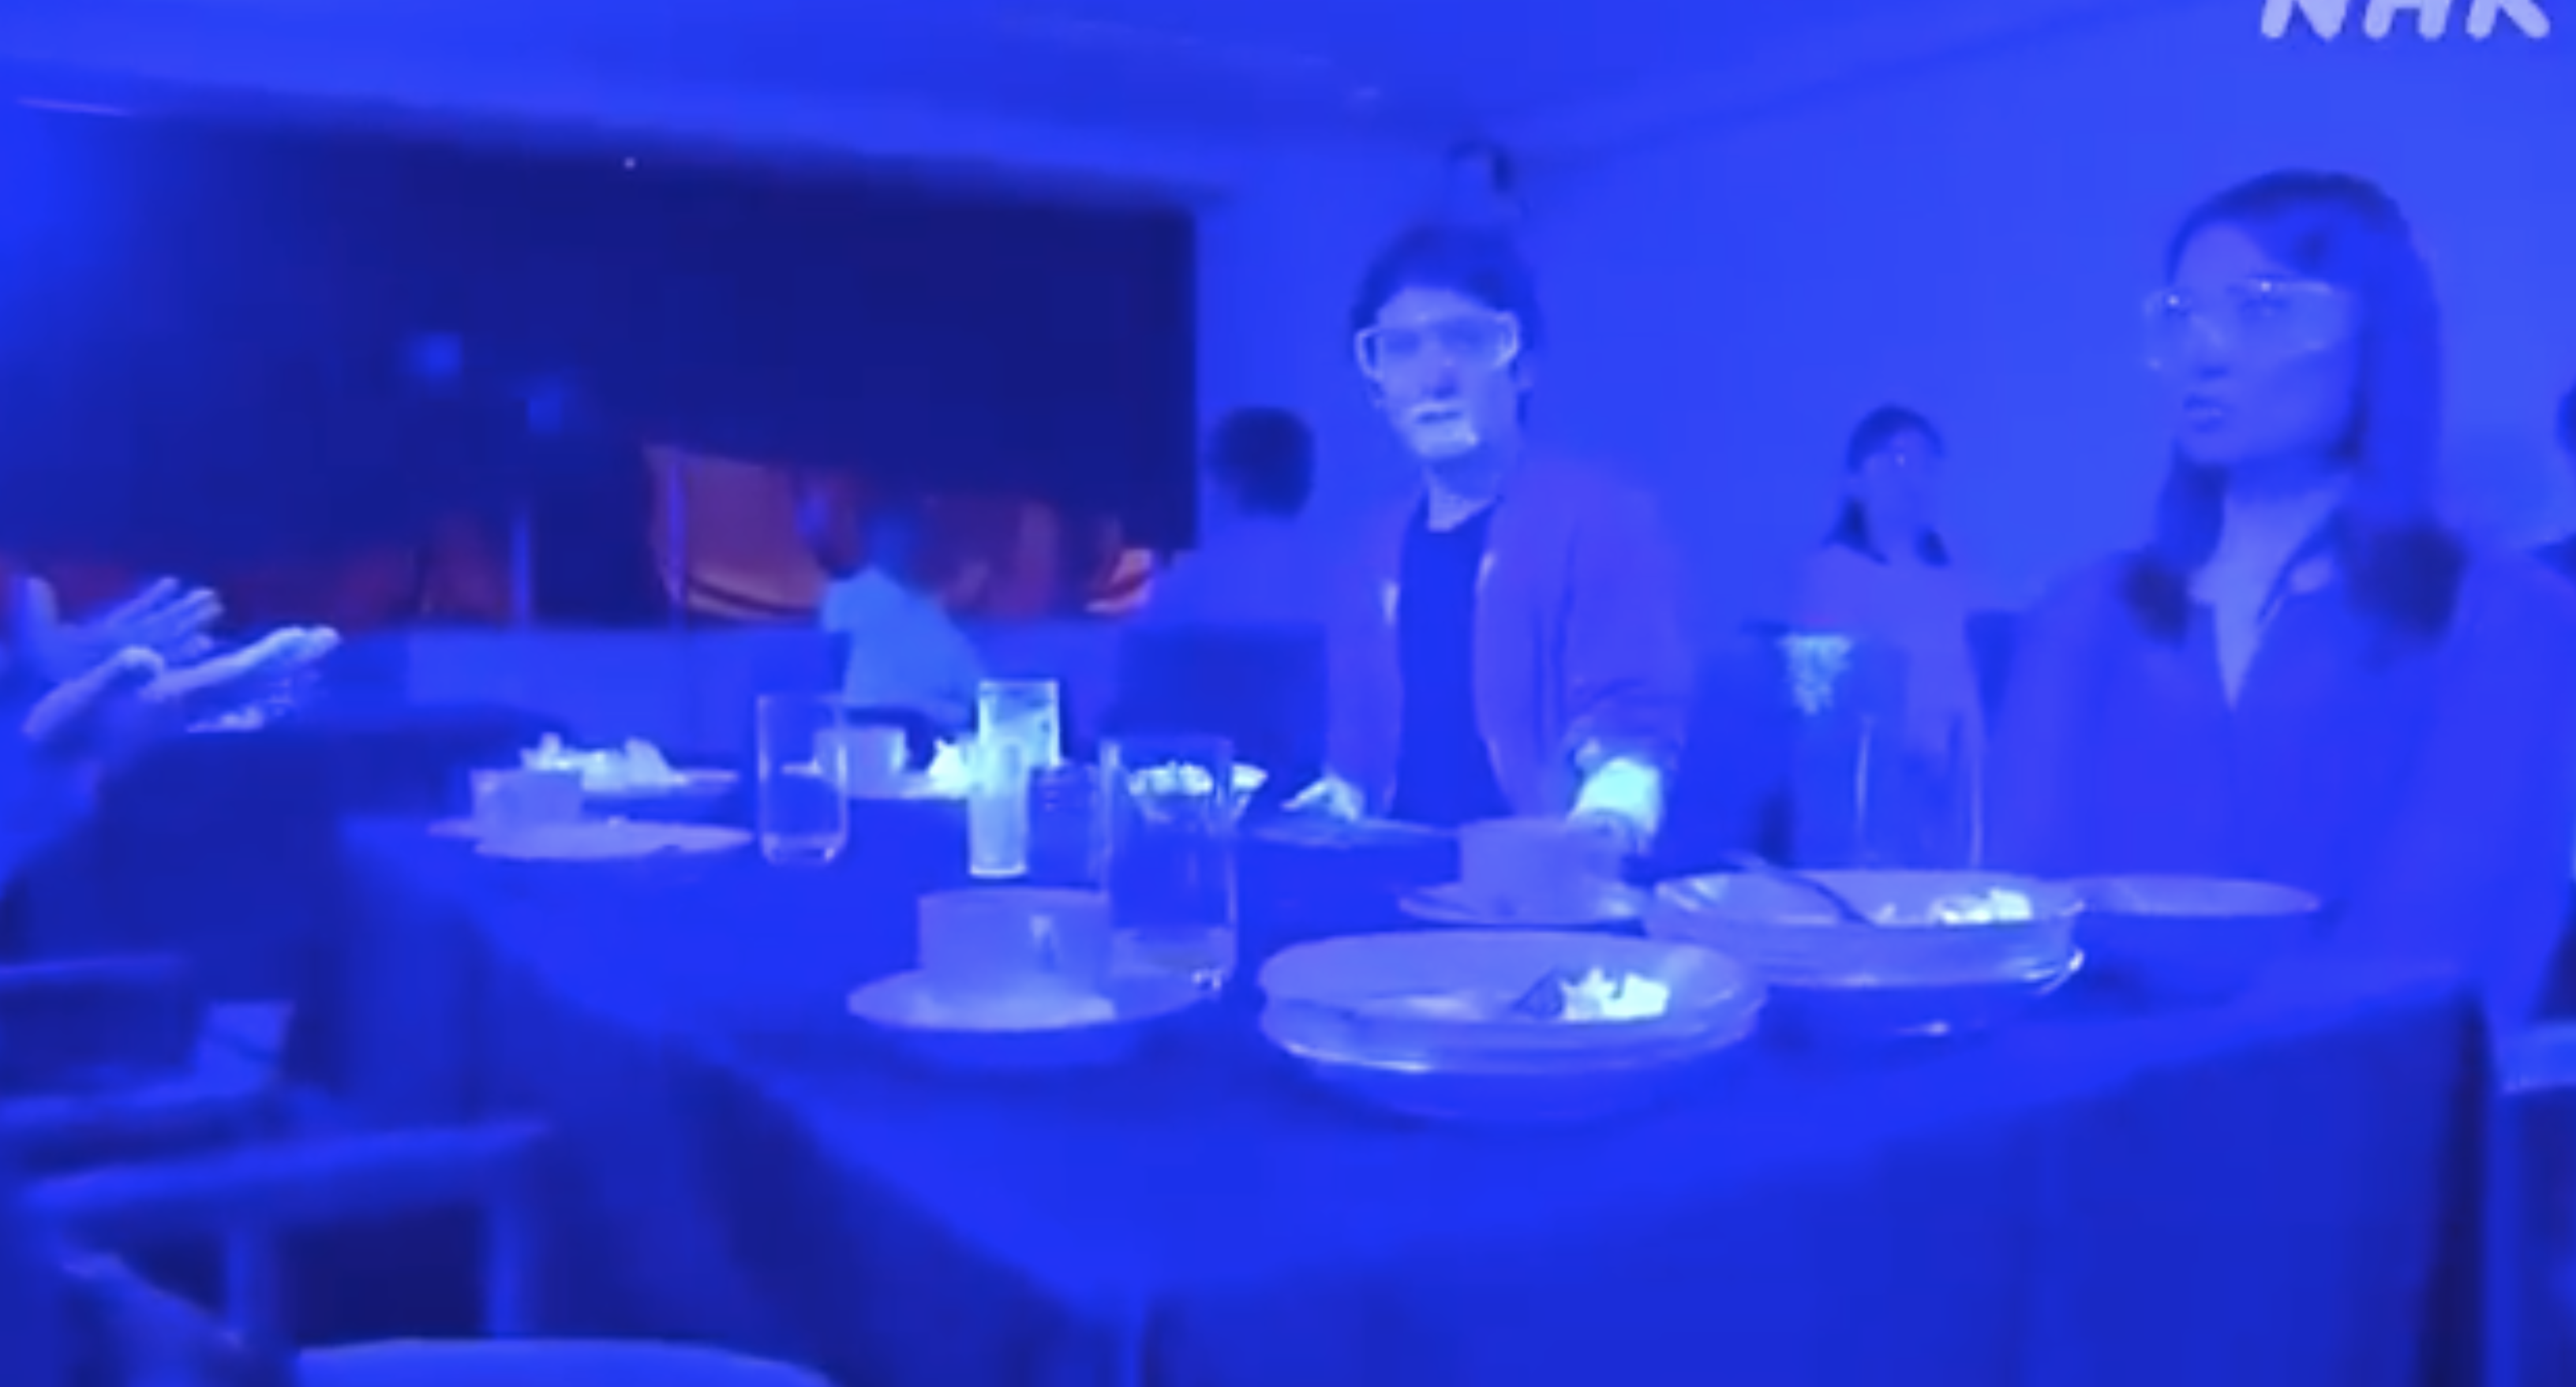 Japanese public broadcaster NHK conducted a new black light experiment to show a virus like the coronavirus can spread in a buffet-like area.